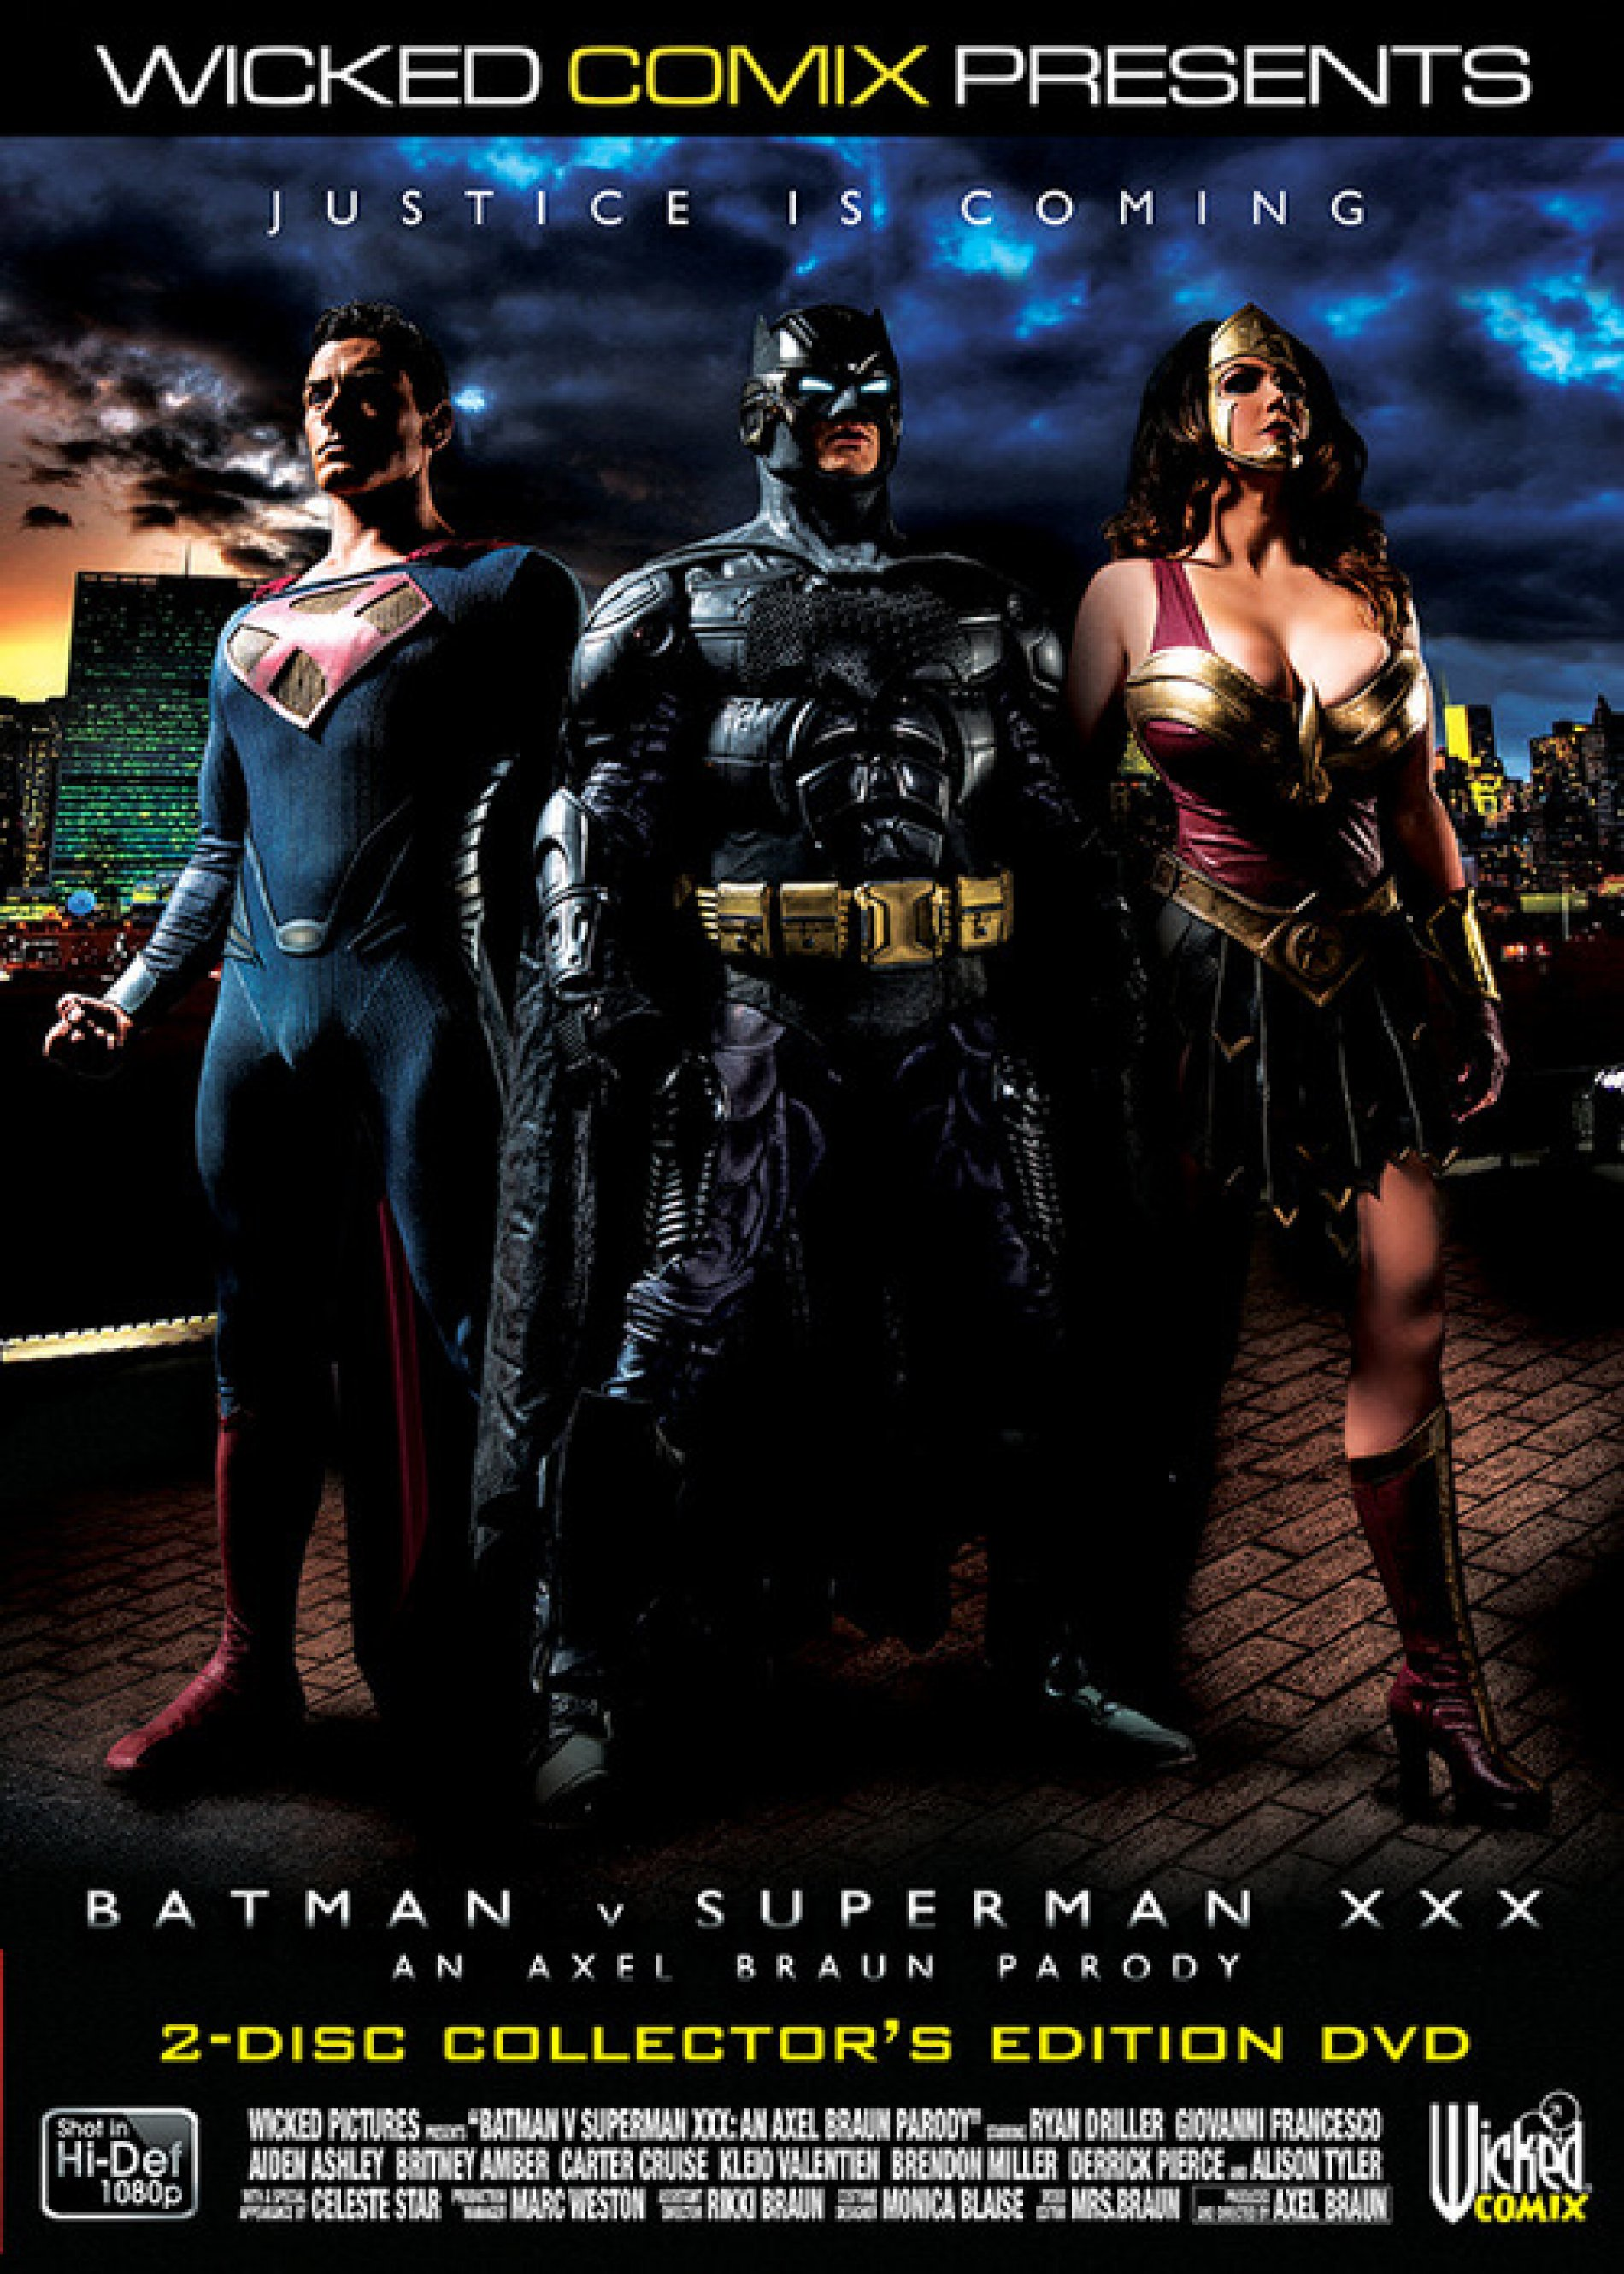 Batman Vs Superman XXX – an Axel Braun Parody